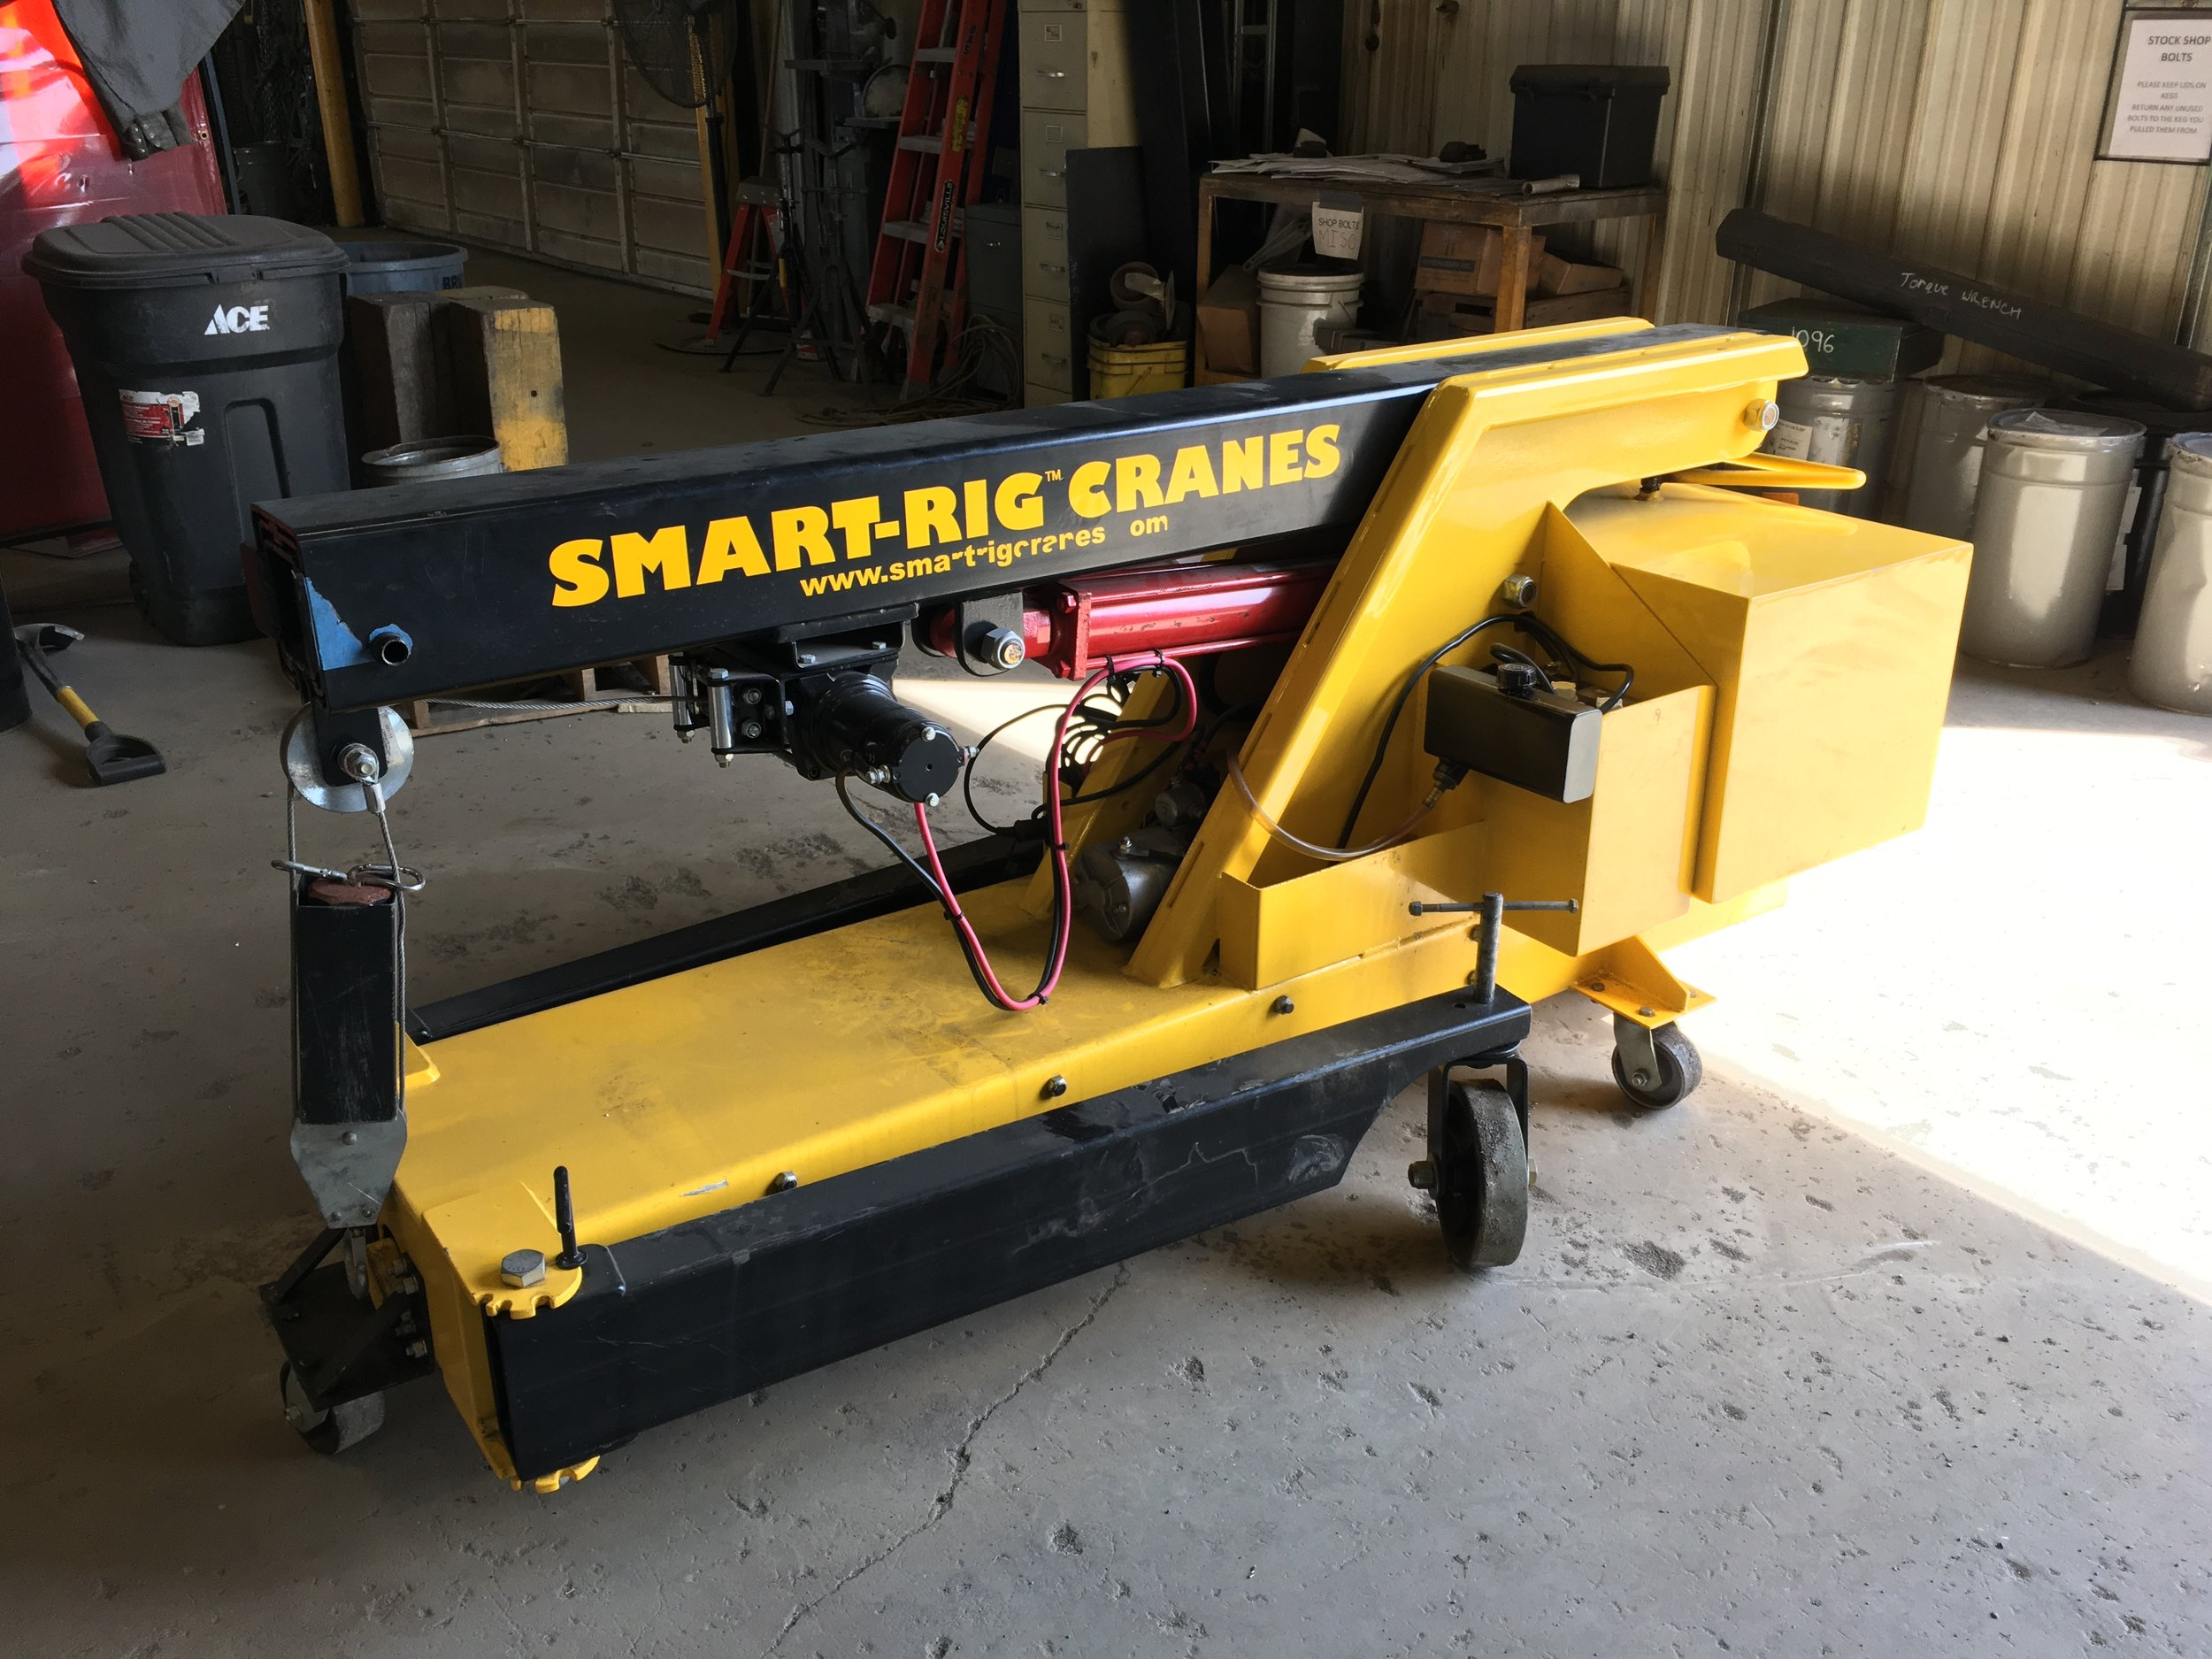 Smart Rig Crane - The Smart Rig Crane is a compact, portable mini-crane that has the ability to fit into tight spaces and can be transported by elevator, truck, or van.